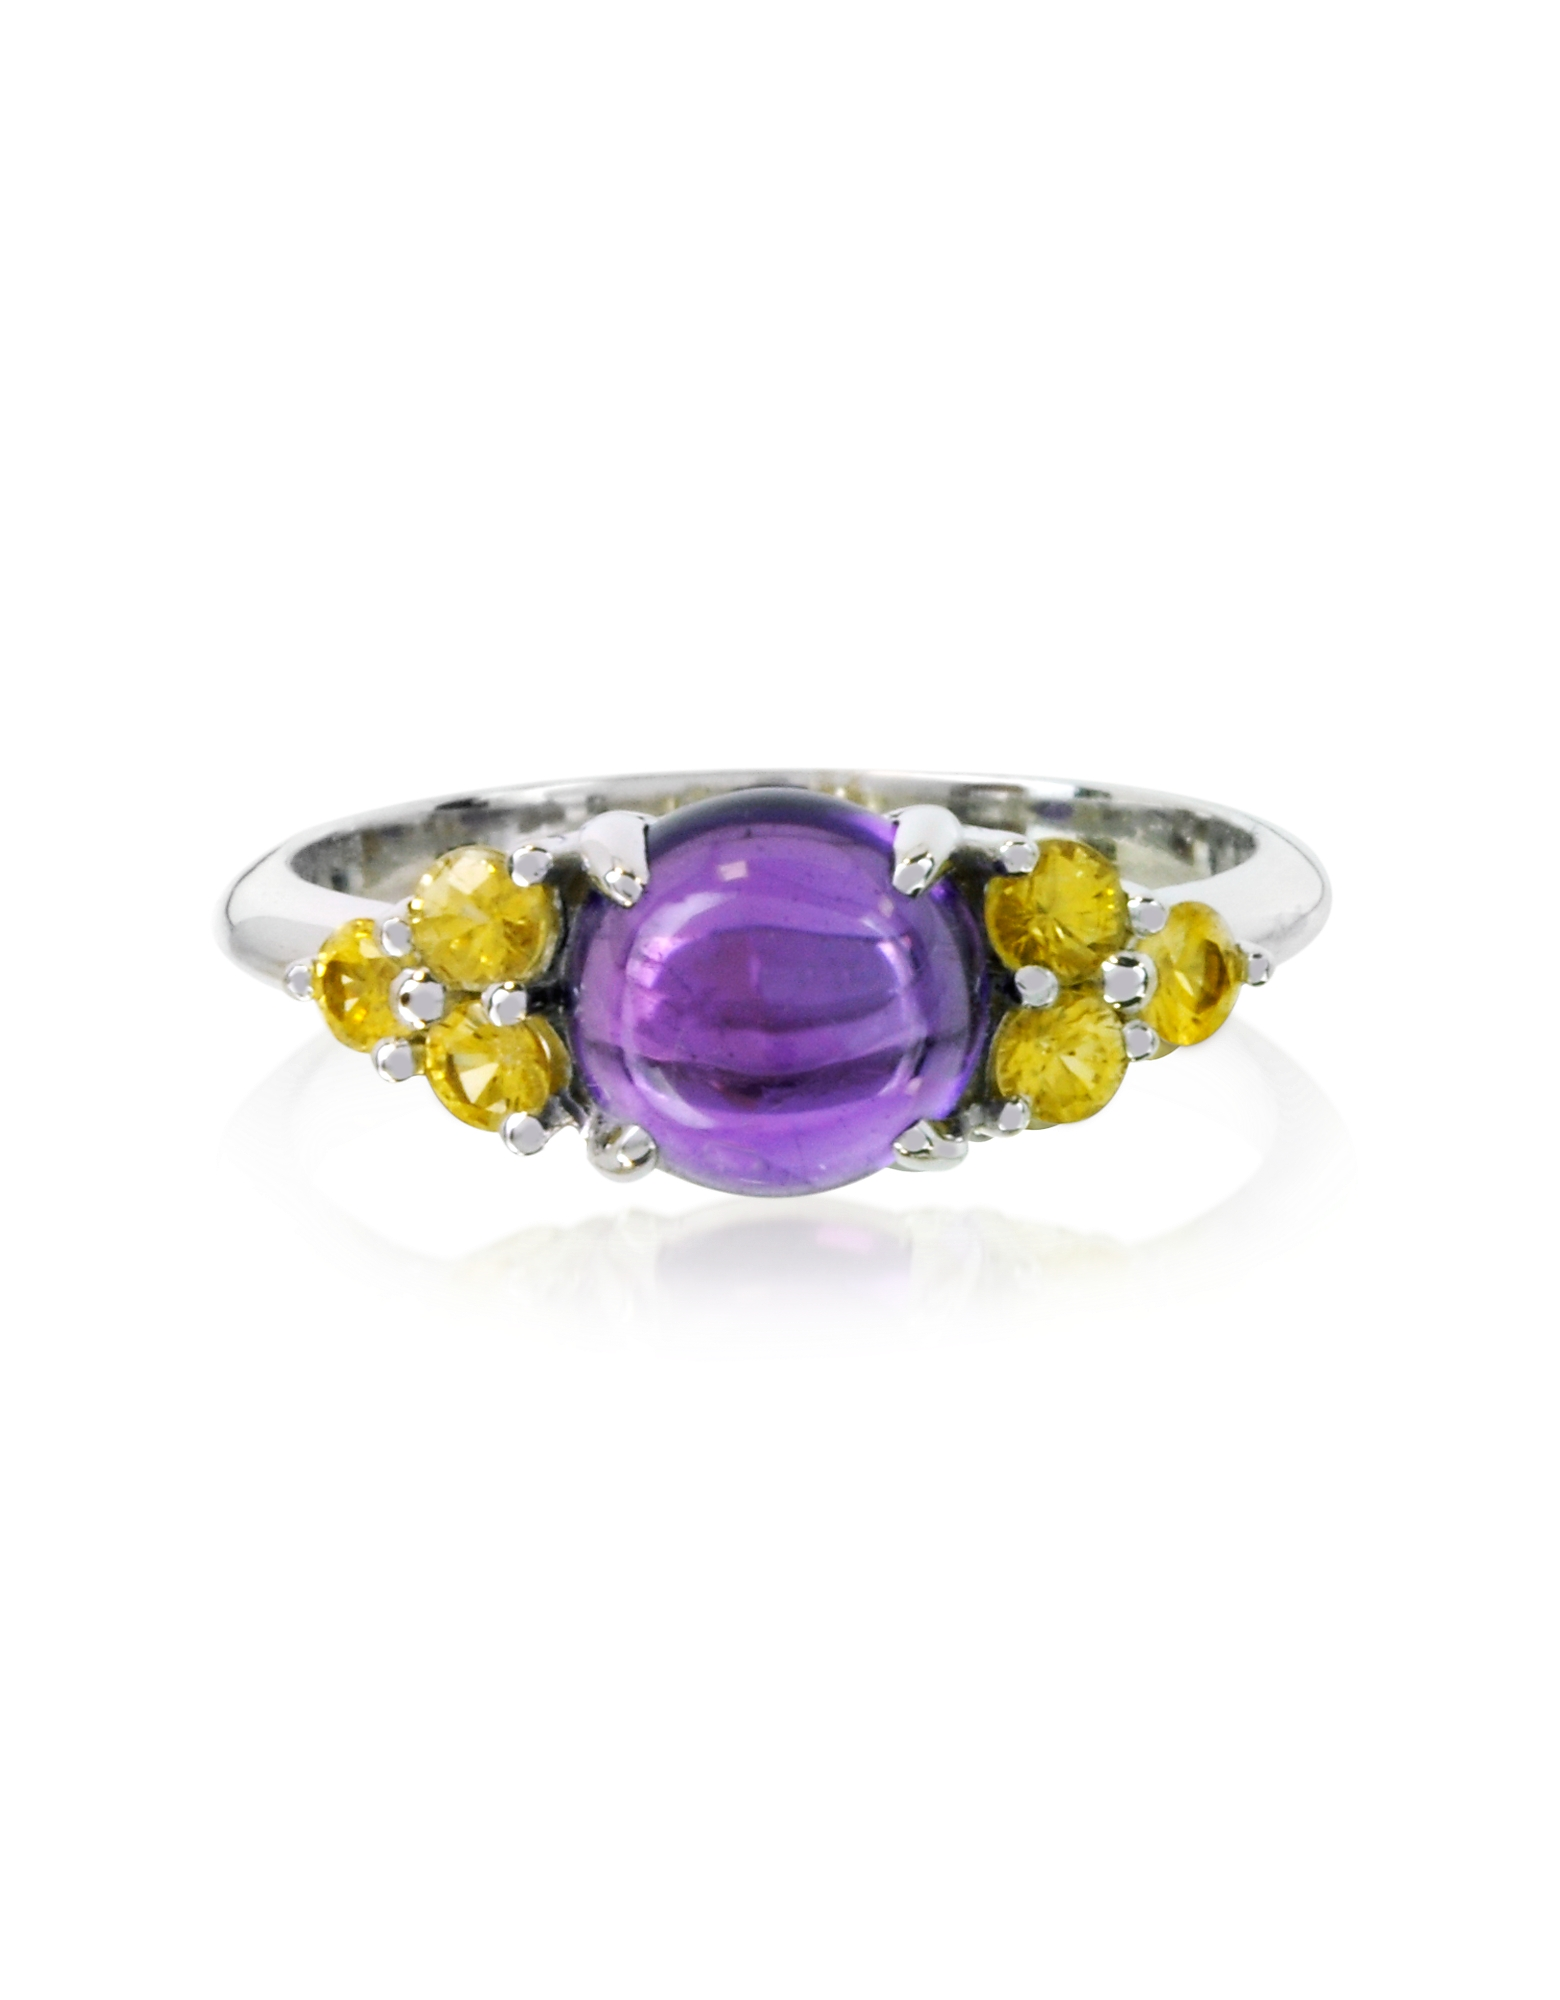 Mia & Beverly Designer Rings, Amethyst and Sapphires 18K White Gold Ring